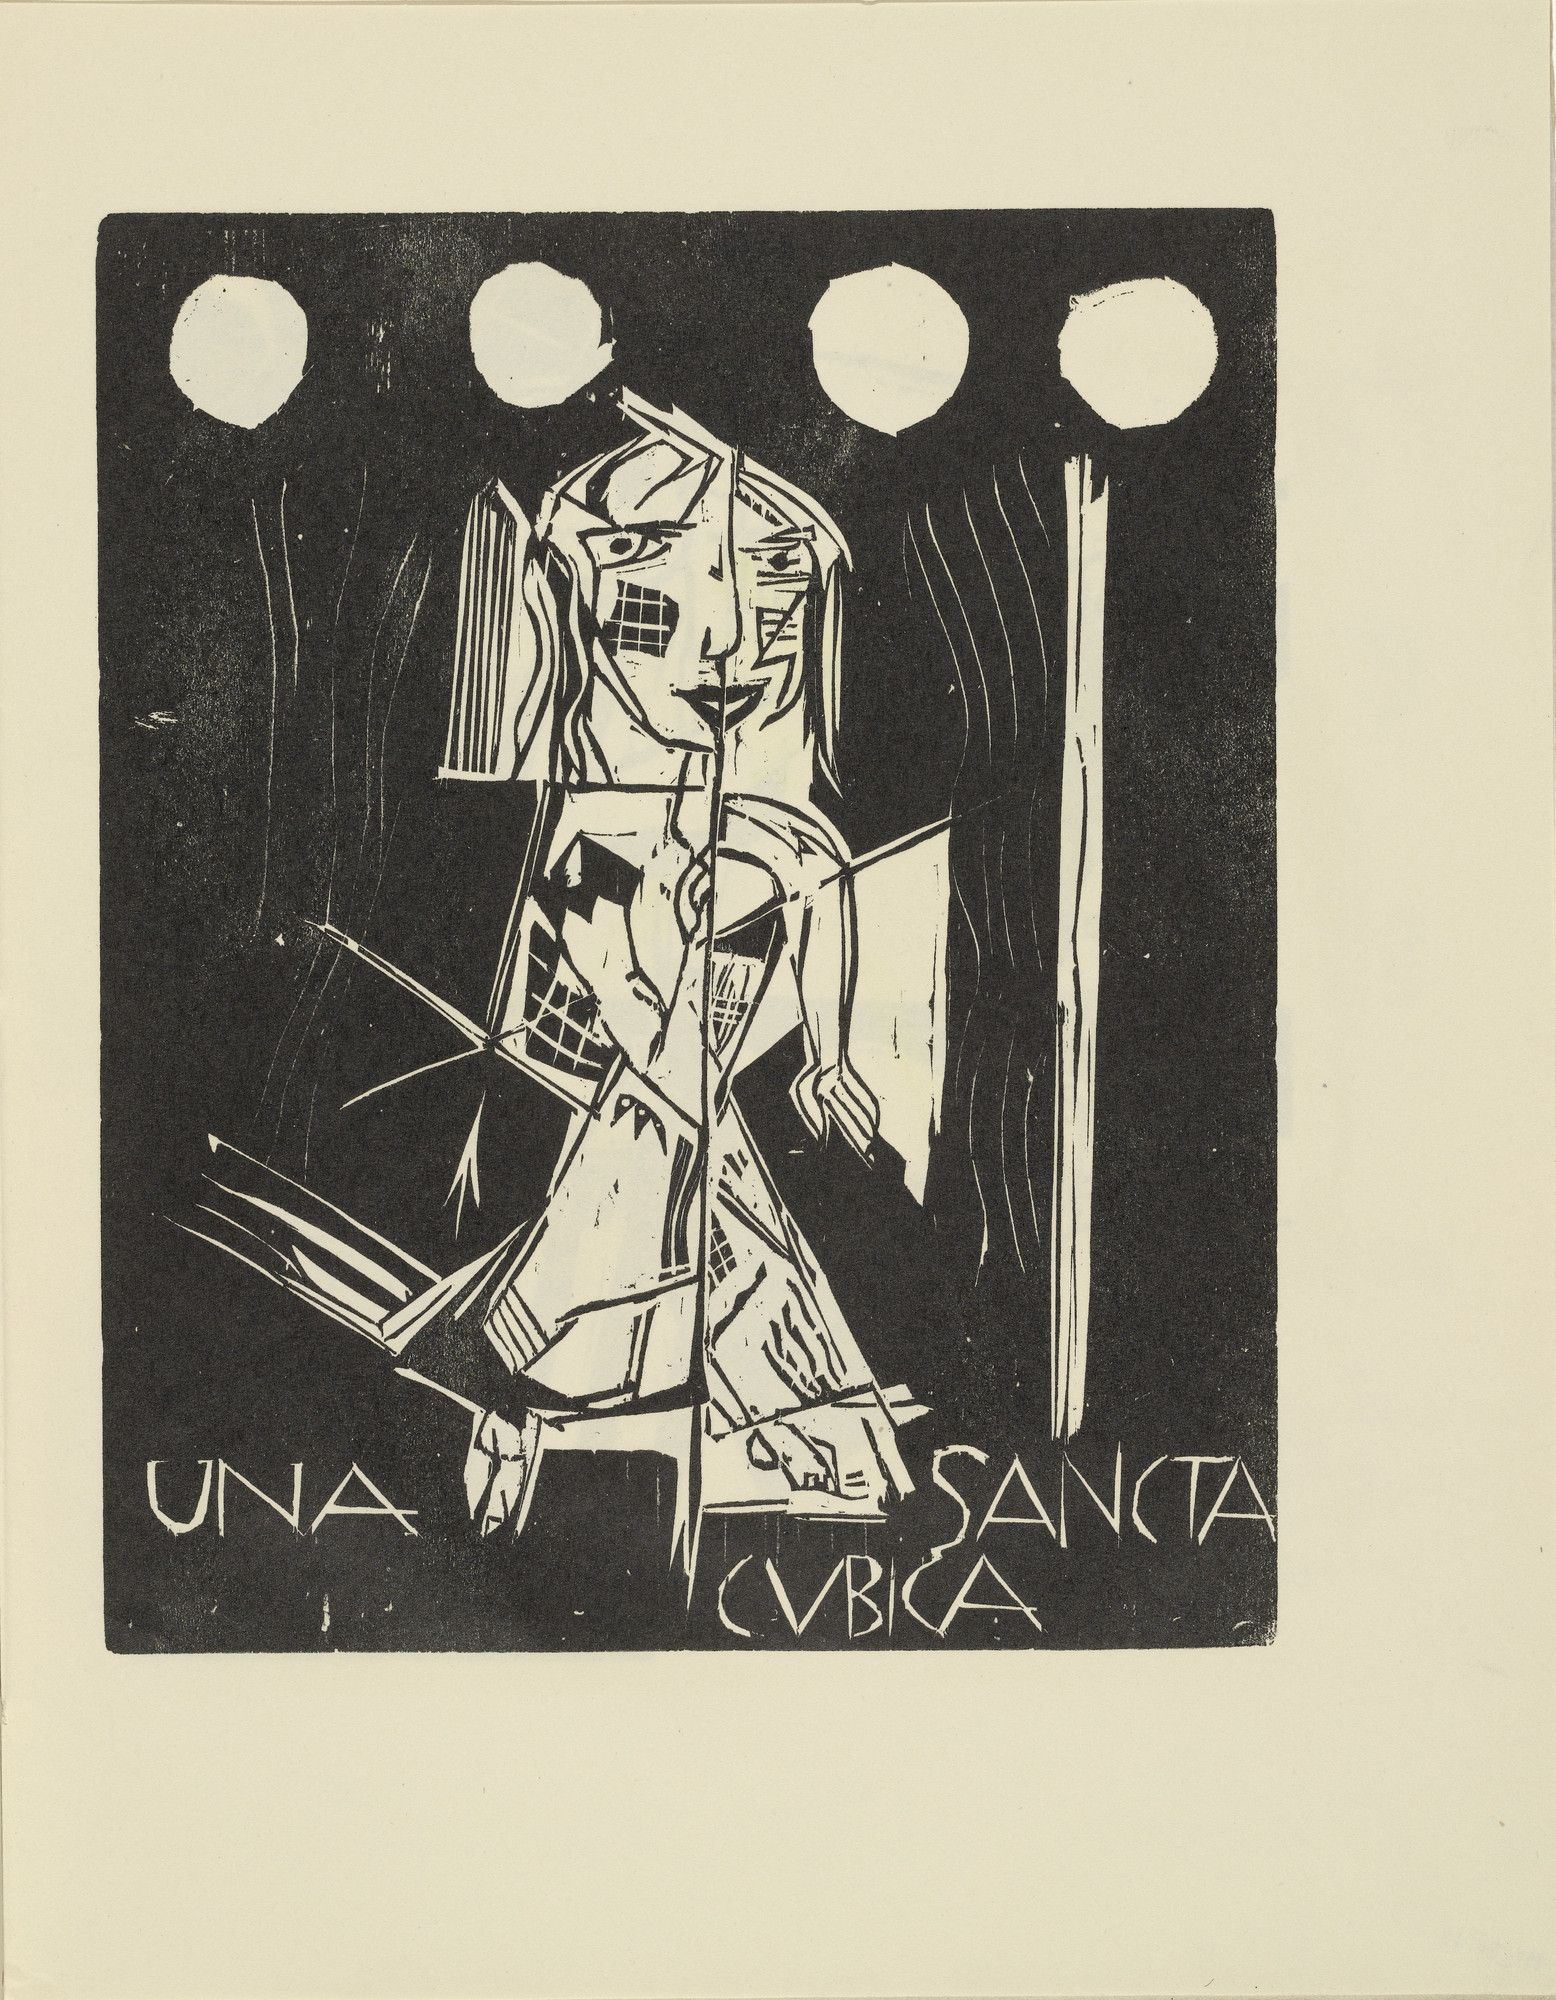 Siegfried Schott. Una Sancta Cubica (Una Sancta Cubica) from the periodical Kündung, vol. 1, no. 7, 8 (July, August 1921). 1921